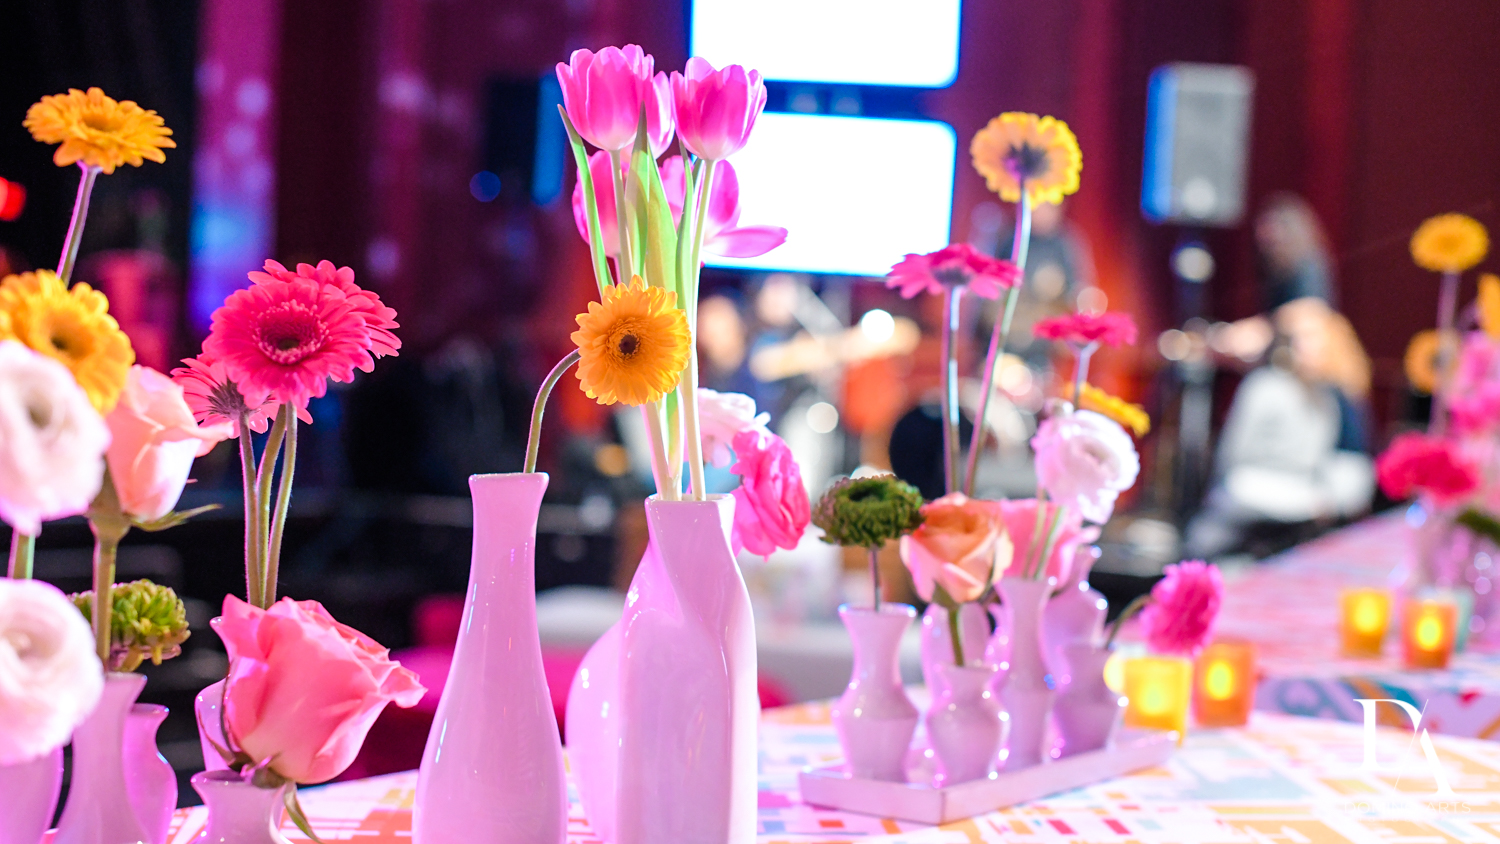 modern fun flowers at Music Festival Bat Mitzvah at The Fillmore Miami Beach by Domino Arts Photography